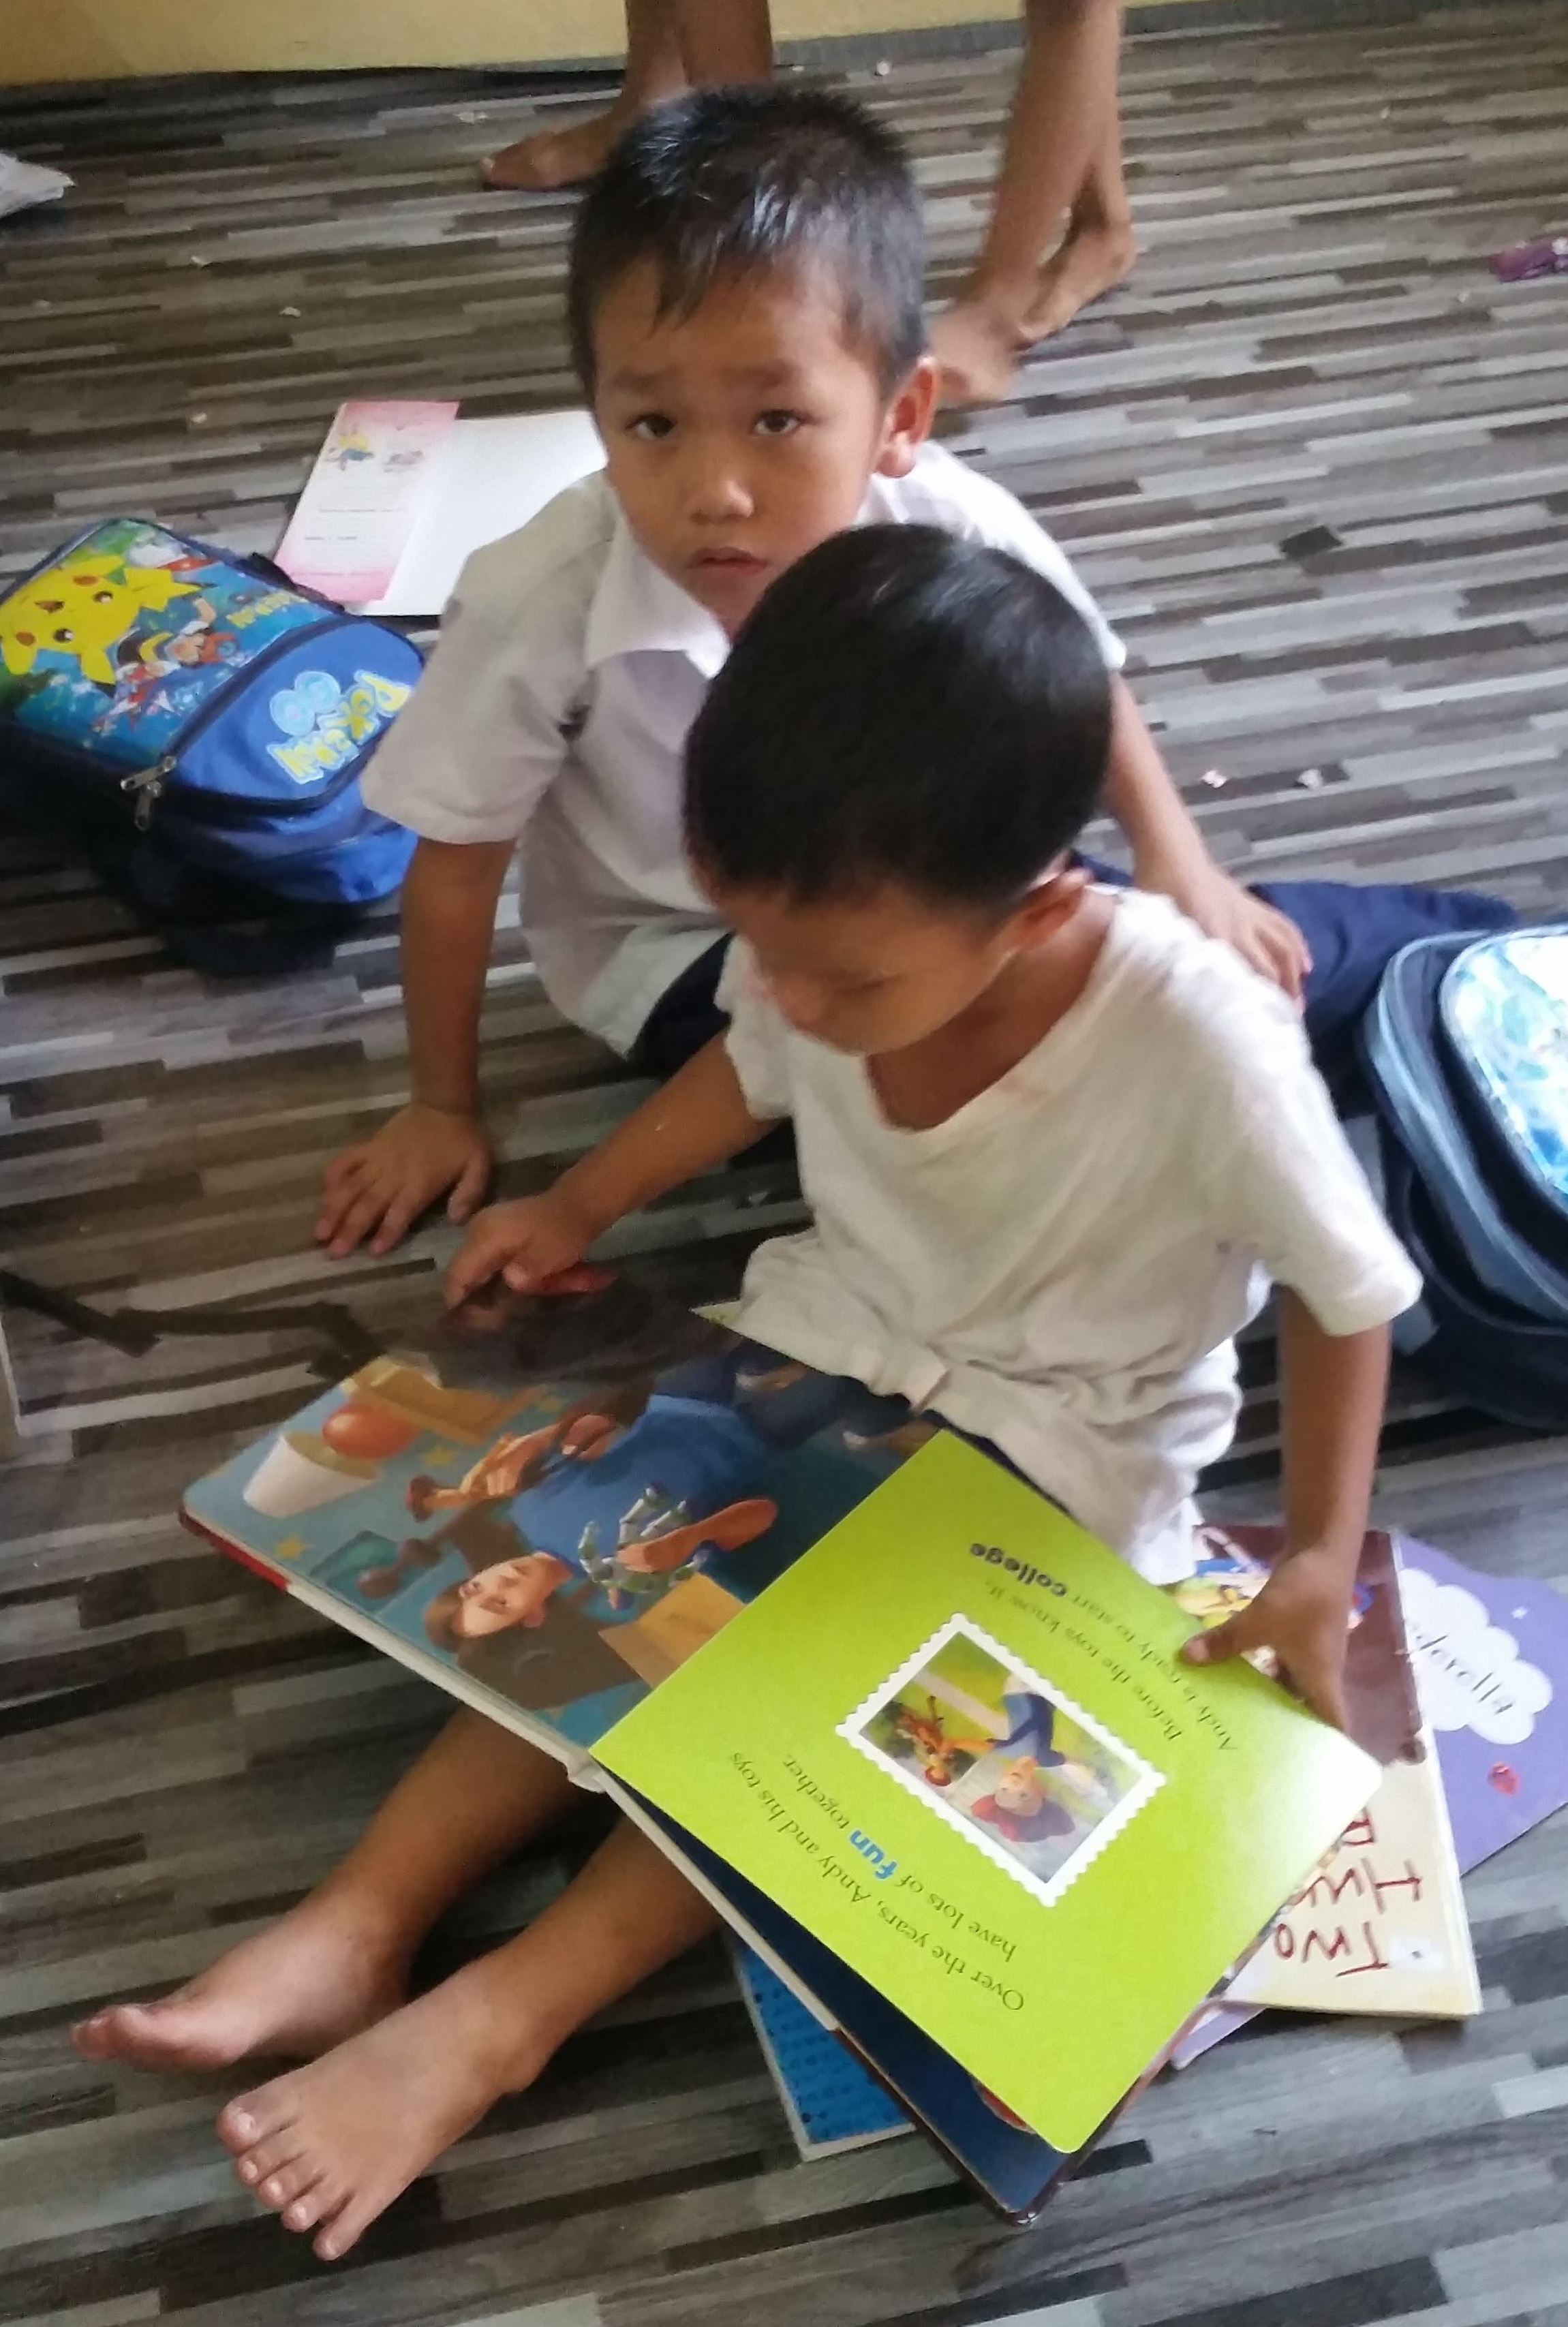 Books at the Myanmar Refugee School in KL